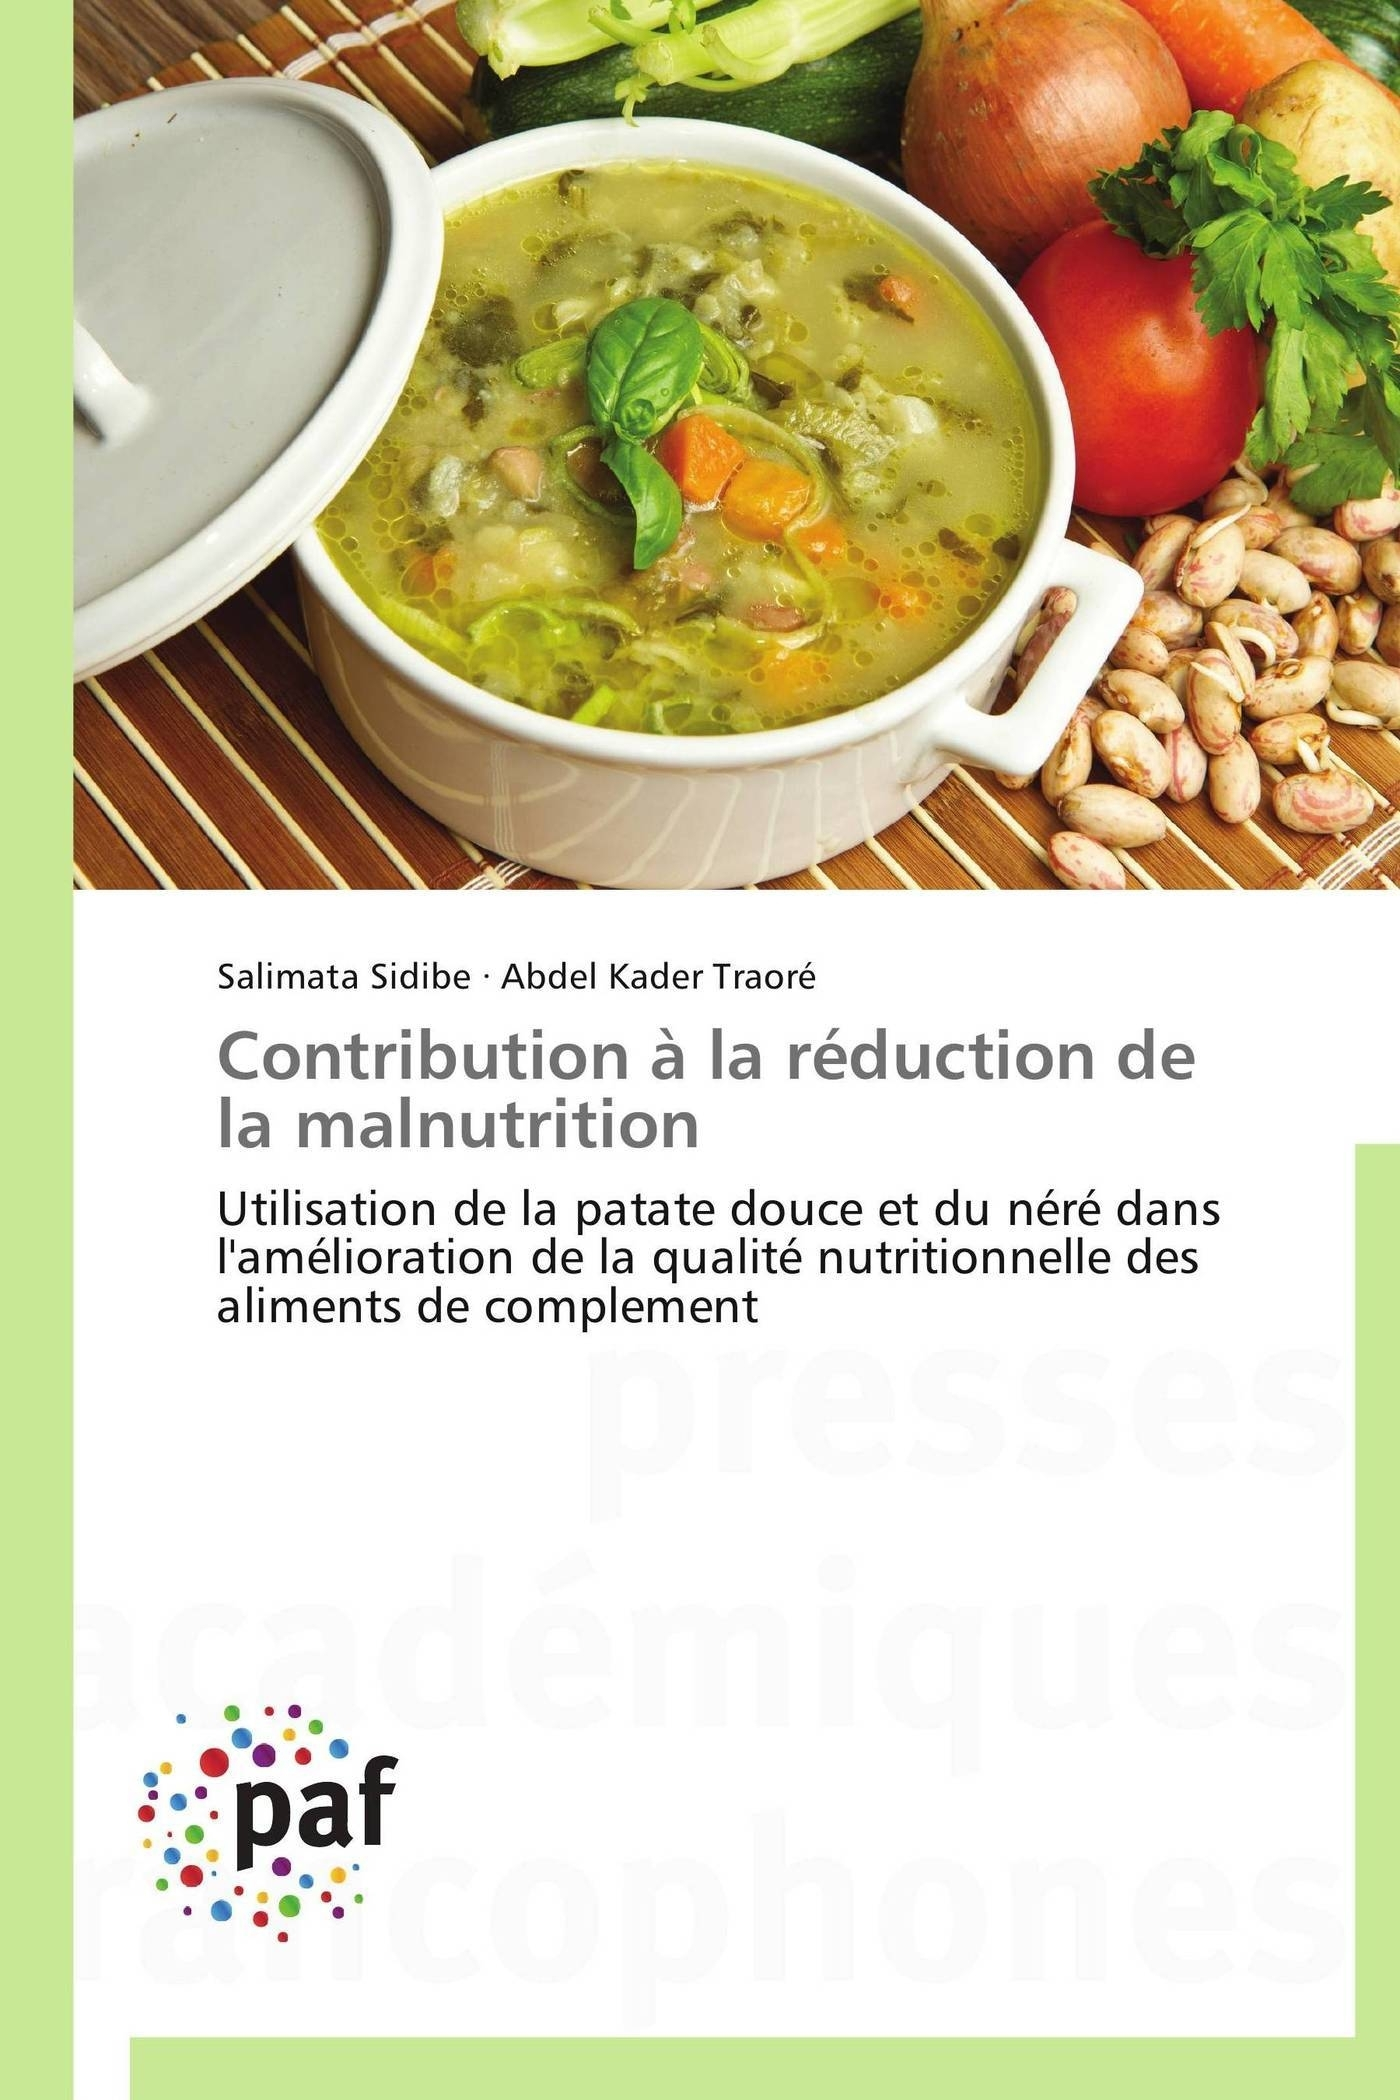 CONTRIBUTION A LA REDUCTION DE LA MALNUTRITION